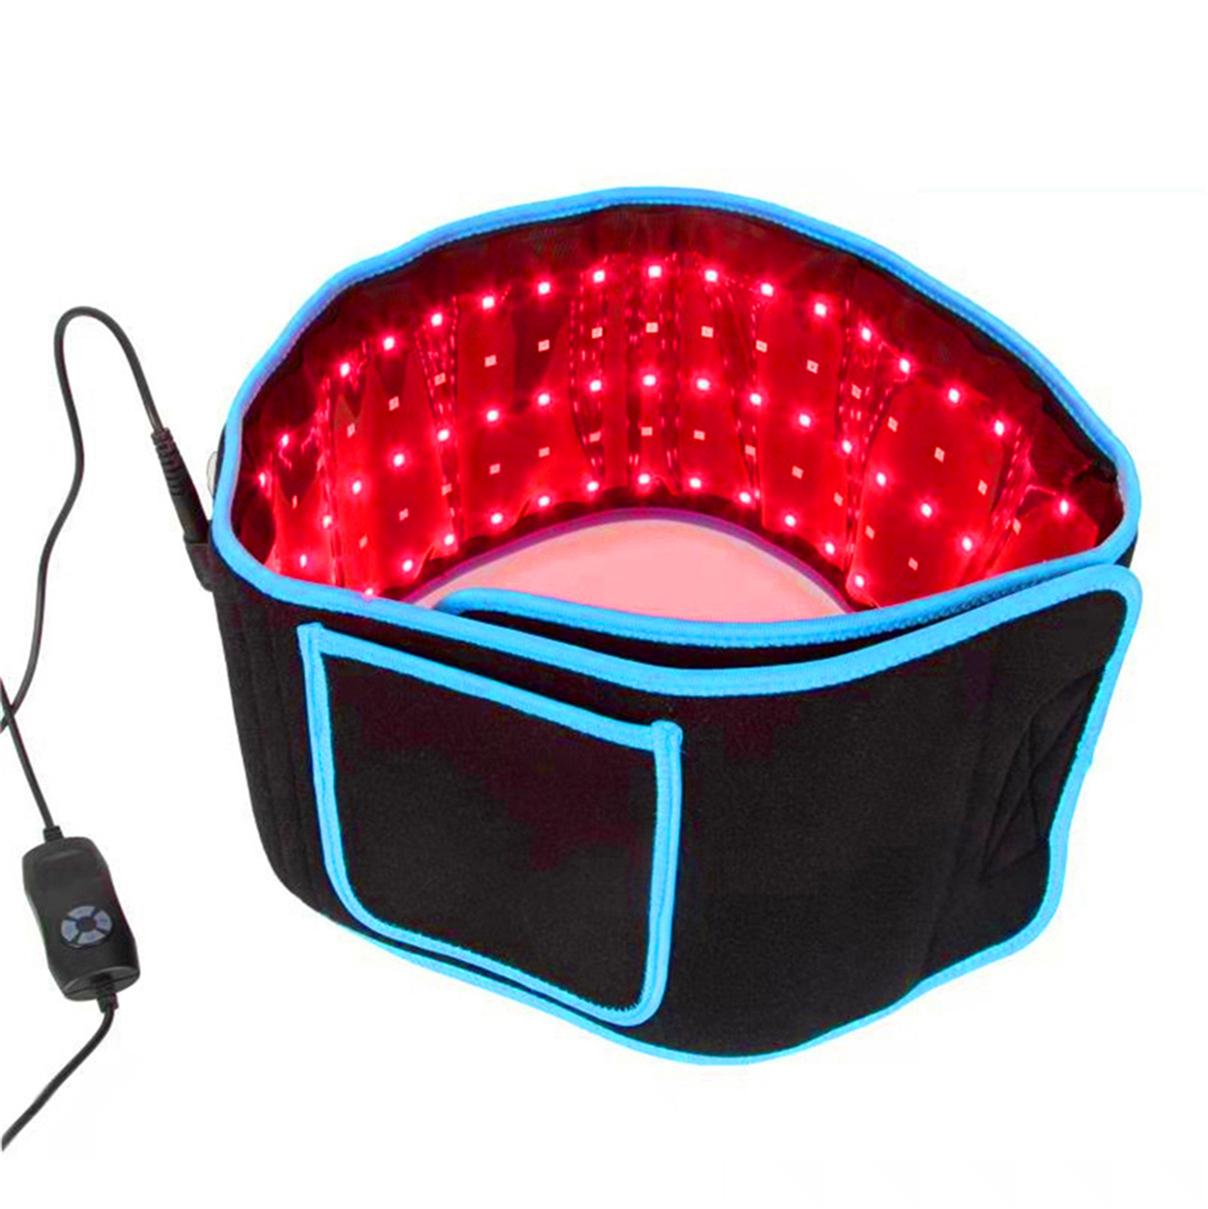 amazon TOP Belts LED therapy belt Lighting Infrared Pain Relief LLLT Lipolysis Body Shaping Sculpting 660nm 850nm Lipo Laser